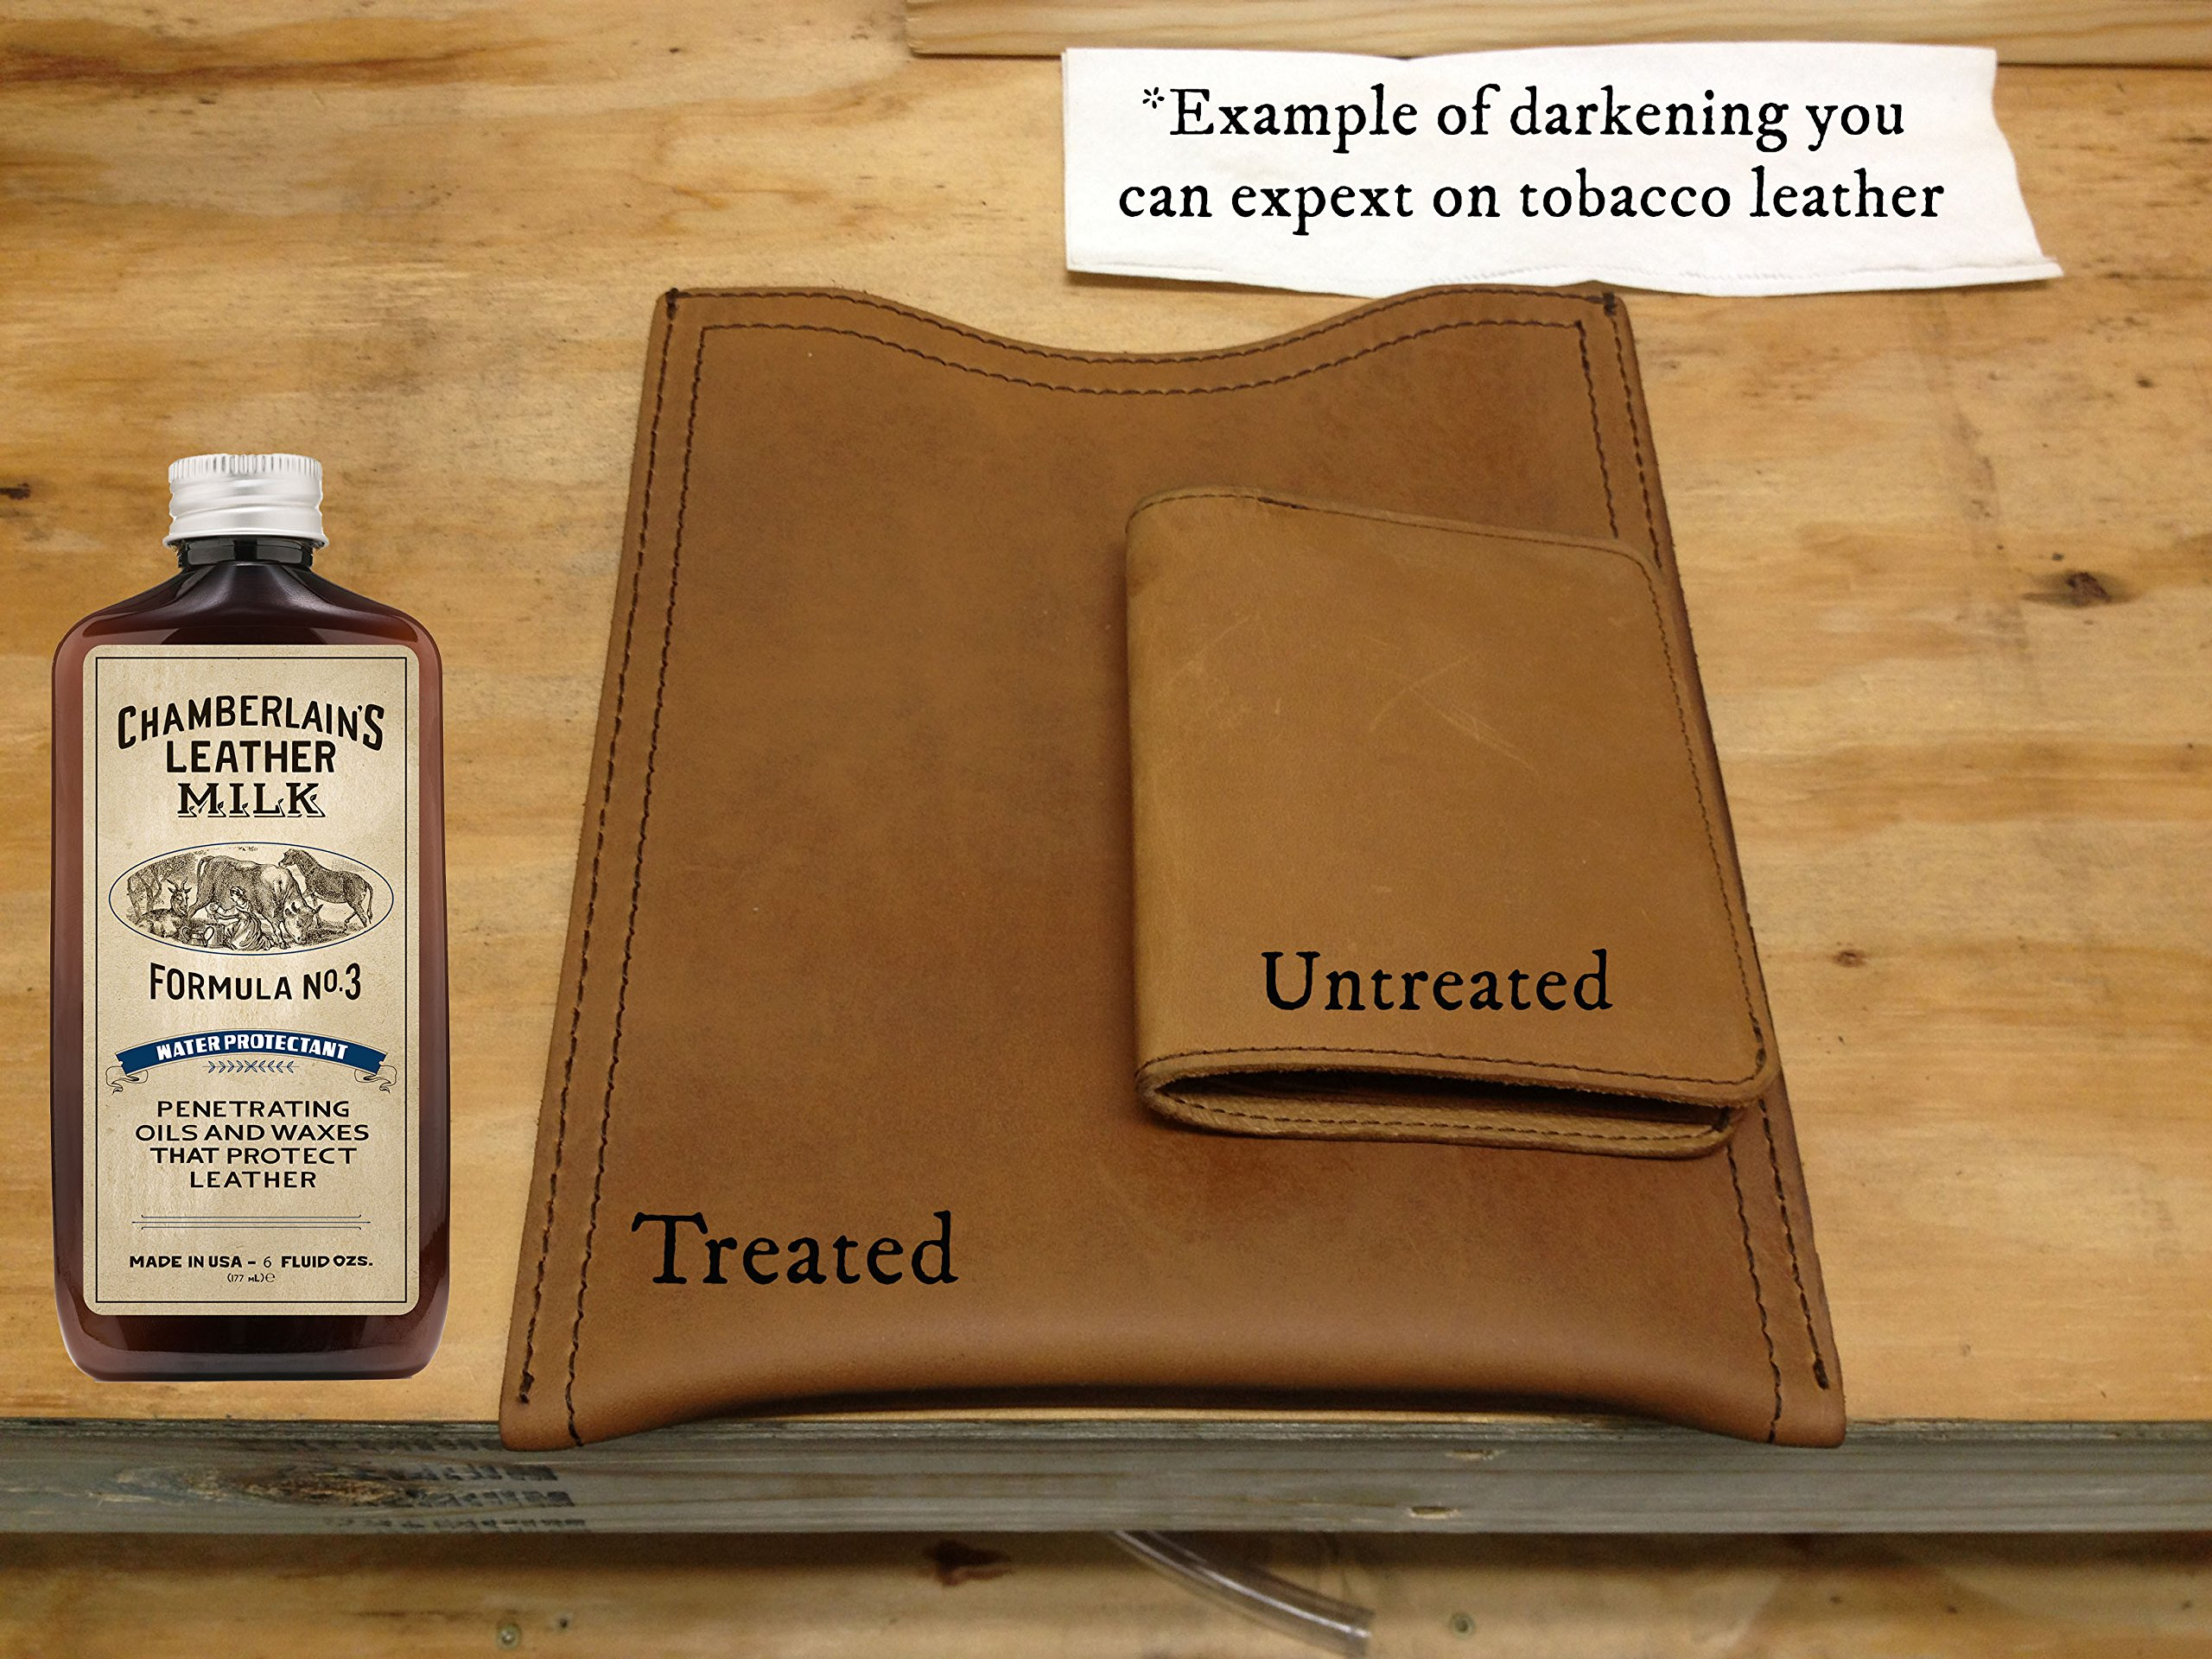 Leather Milk Leather Restoration Kit. Leather Cleaner, Conditioner, and Water Protector - No. 1-3 Leather Care Kit - All Natural, Non-Toxic. 2 Sizes. Made in The USA. Includes 3 Restoration Pads! by Chamberlain's Leather Milk (Image #5)